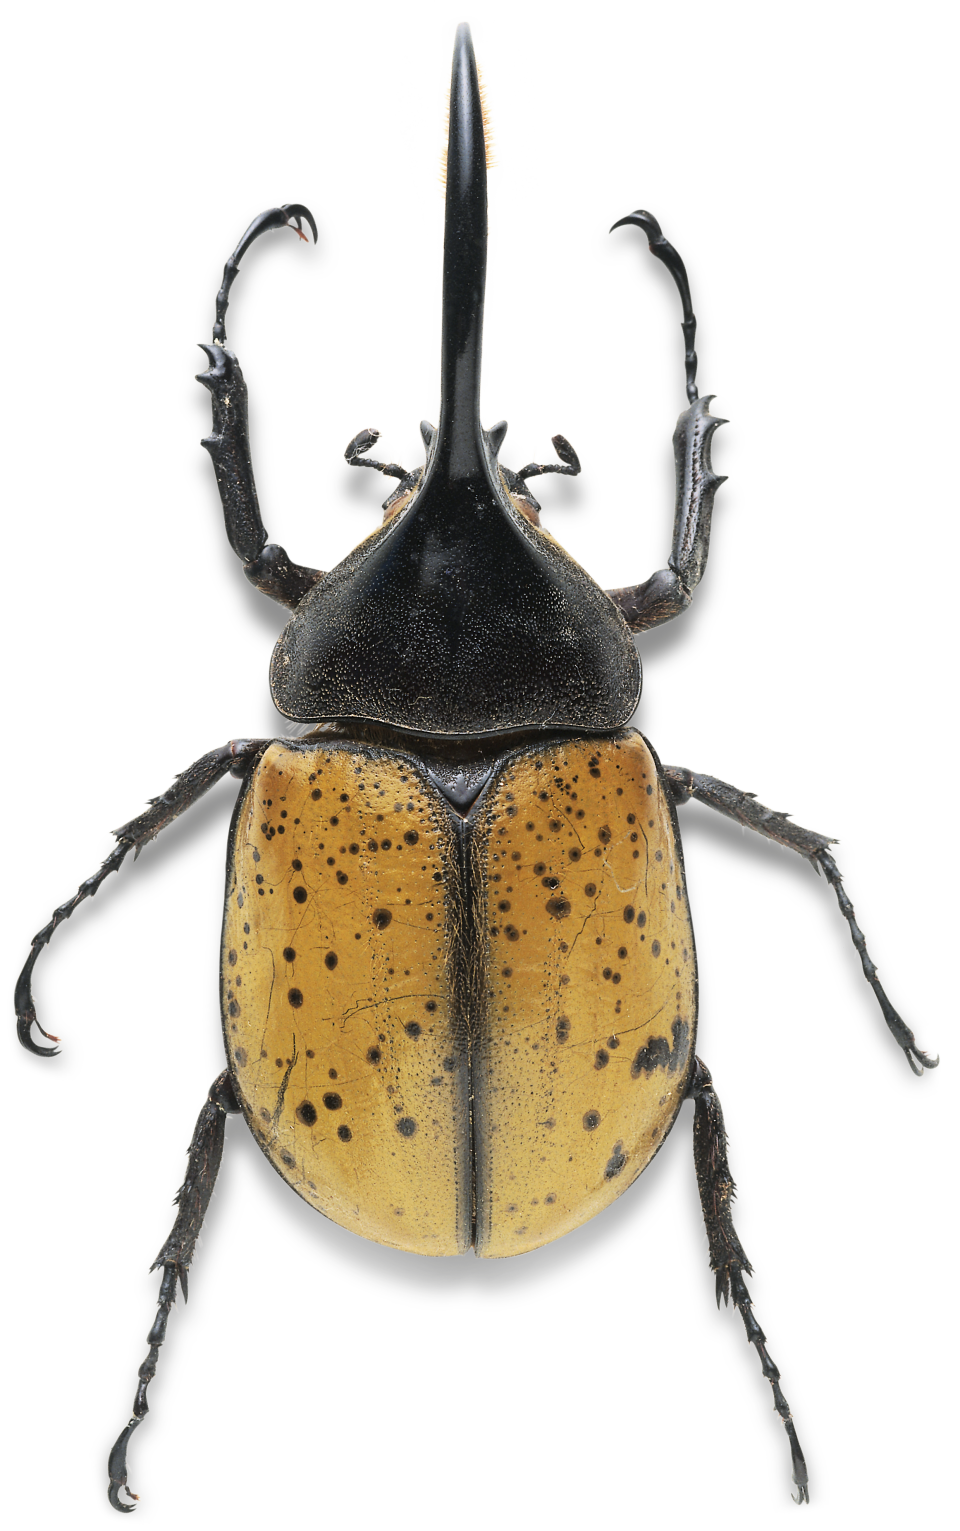 Drawing bugs diving beetle. Image result for beetles